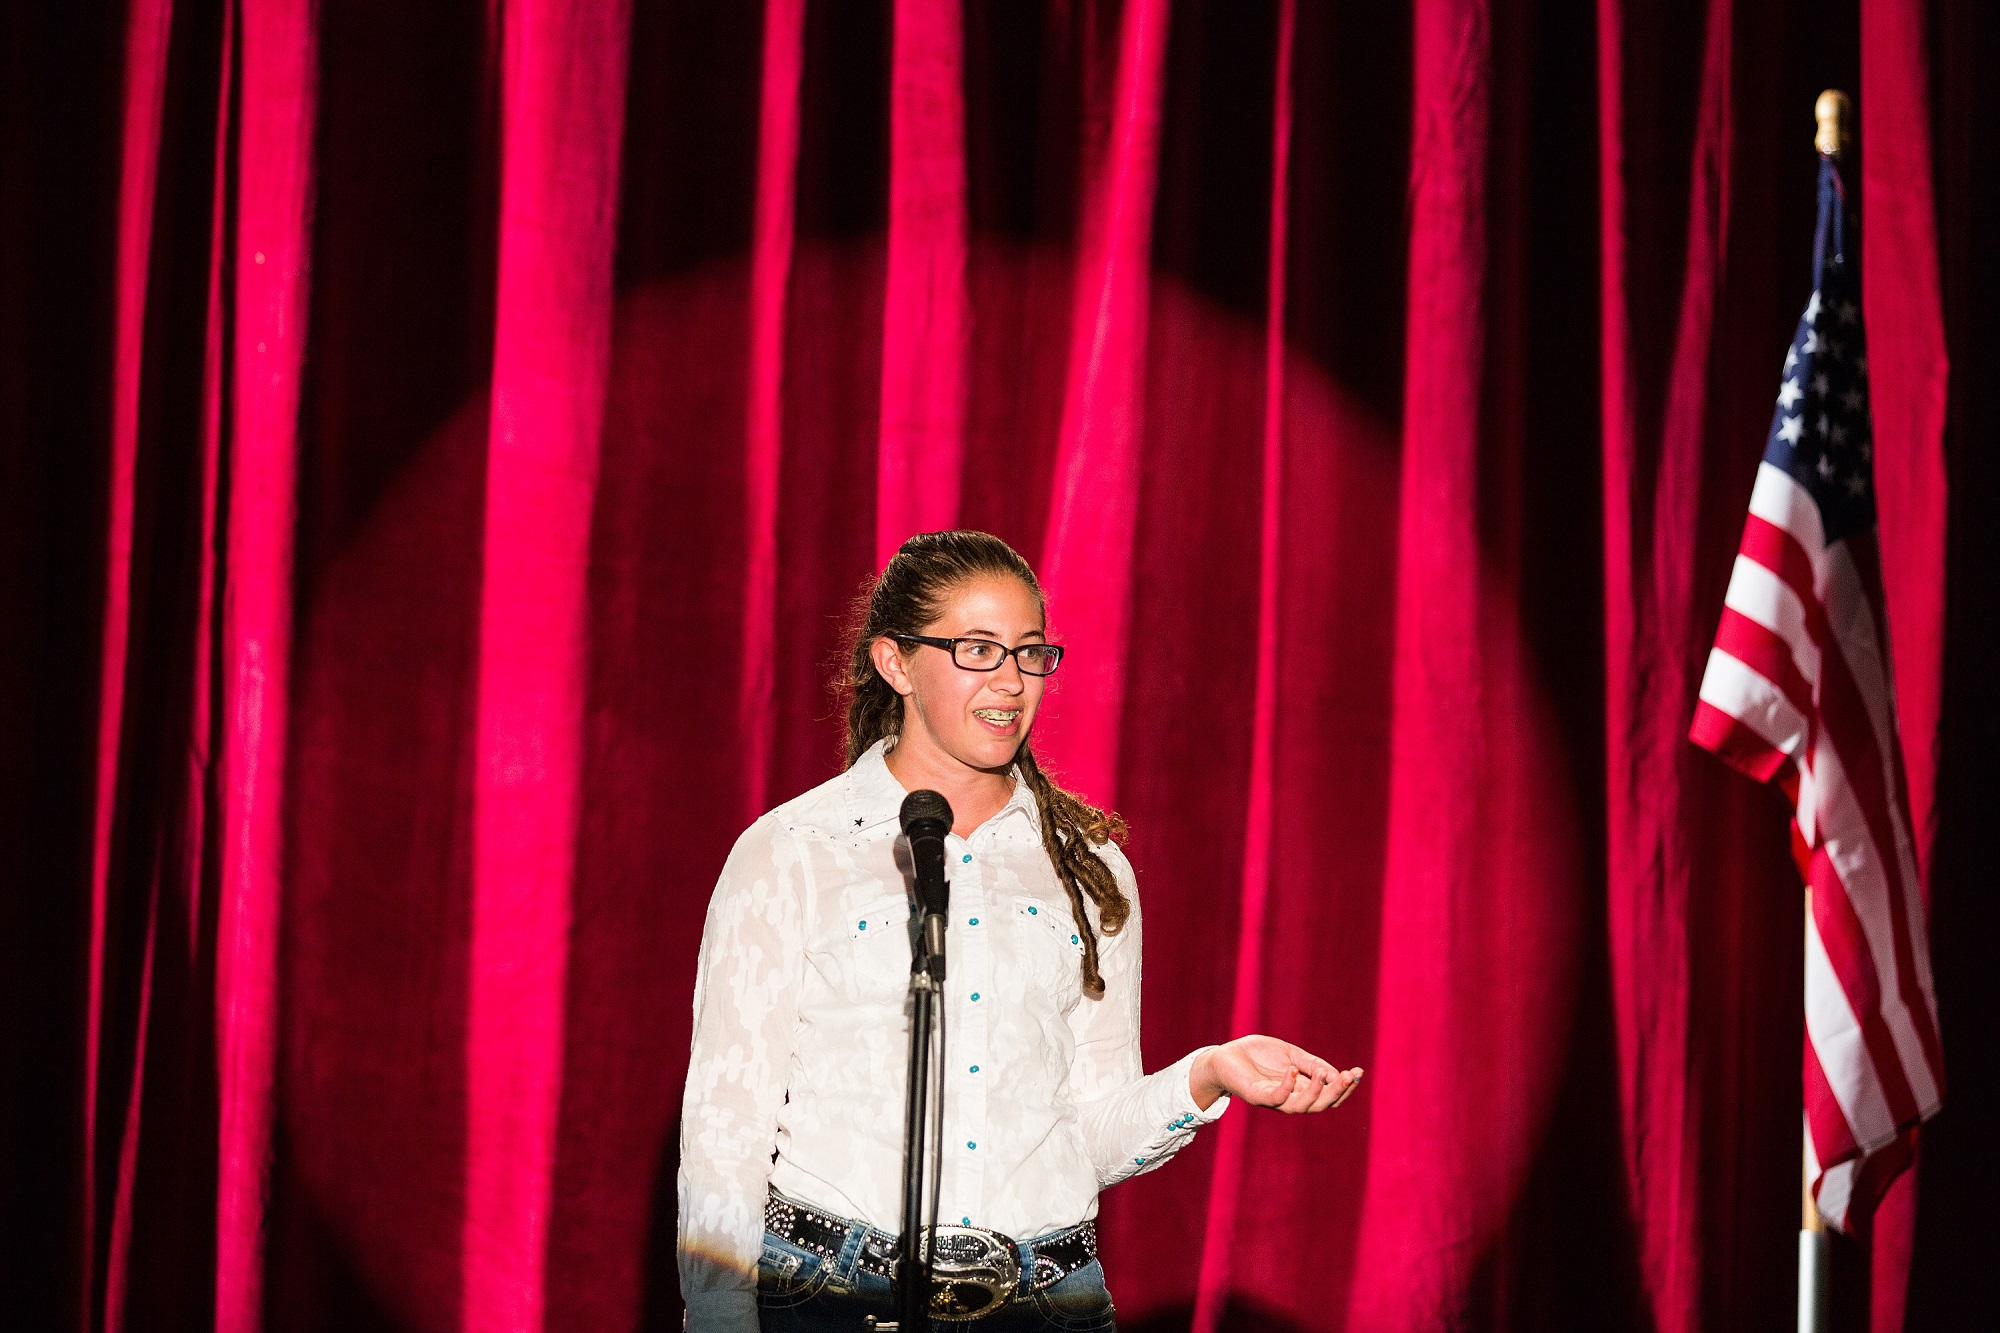 youth competes in public speaking event